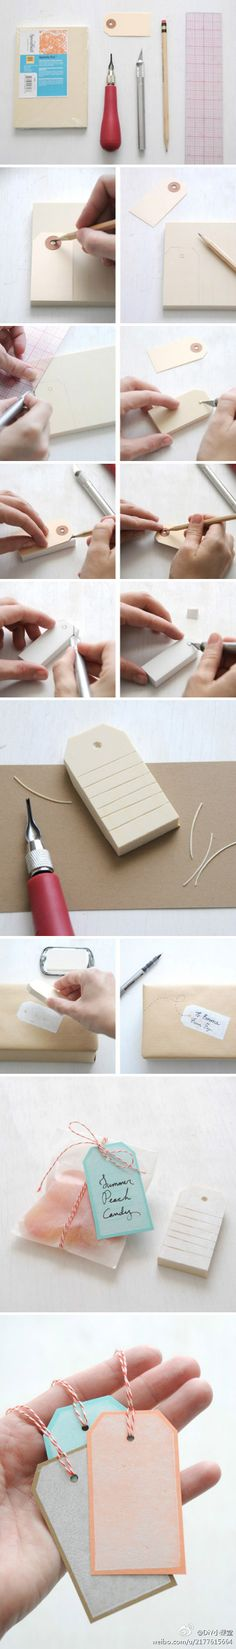 make your own tag rubber-stamp tutorial